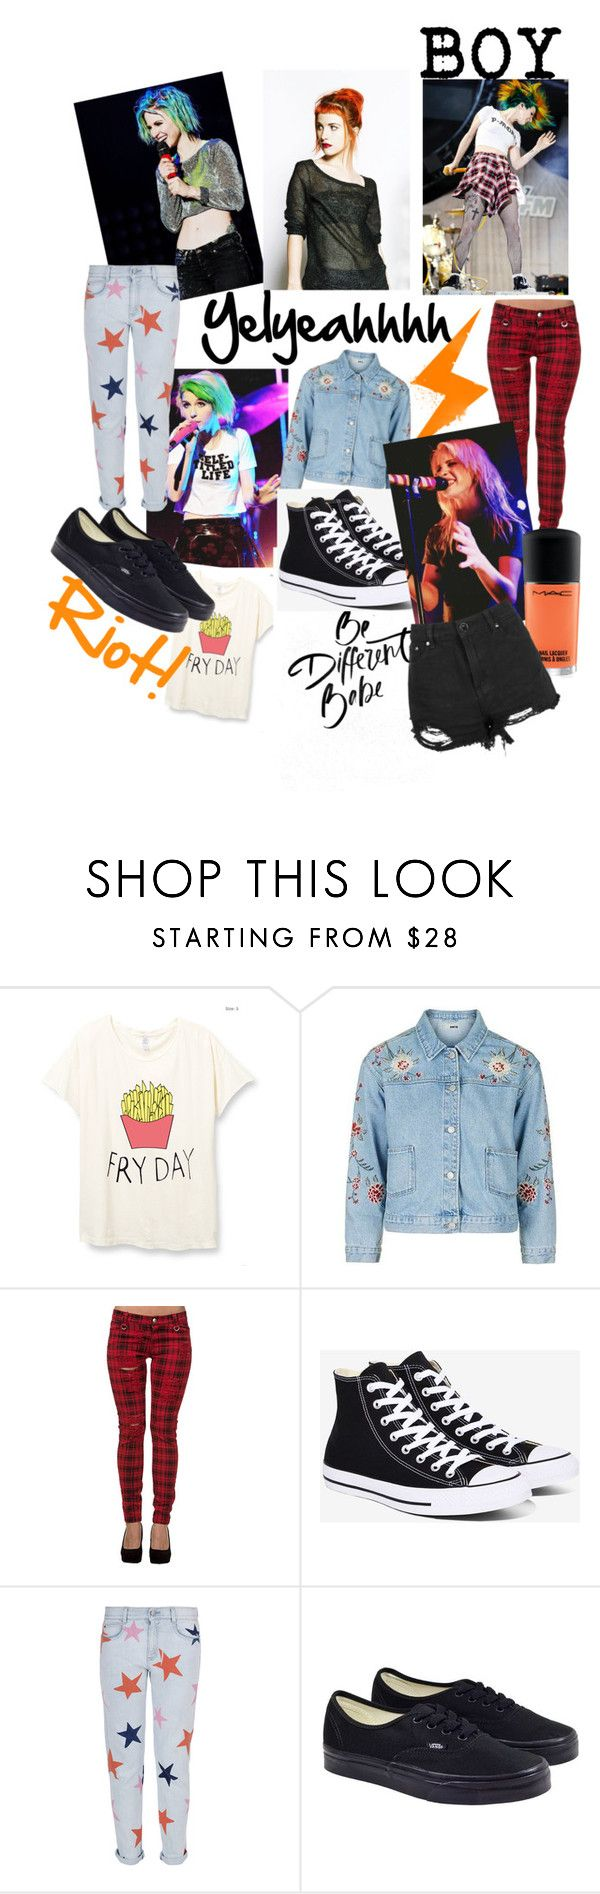 """Hayley Williams inspired"" by ikgidda ❤ liked on Polyvore featuring Topshop, Converse, STELLA McCARTNEY and Vans"